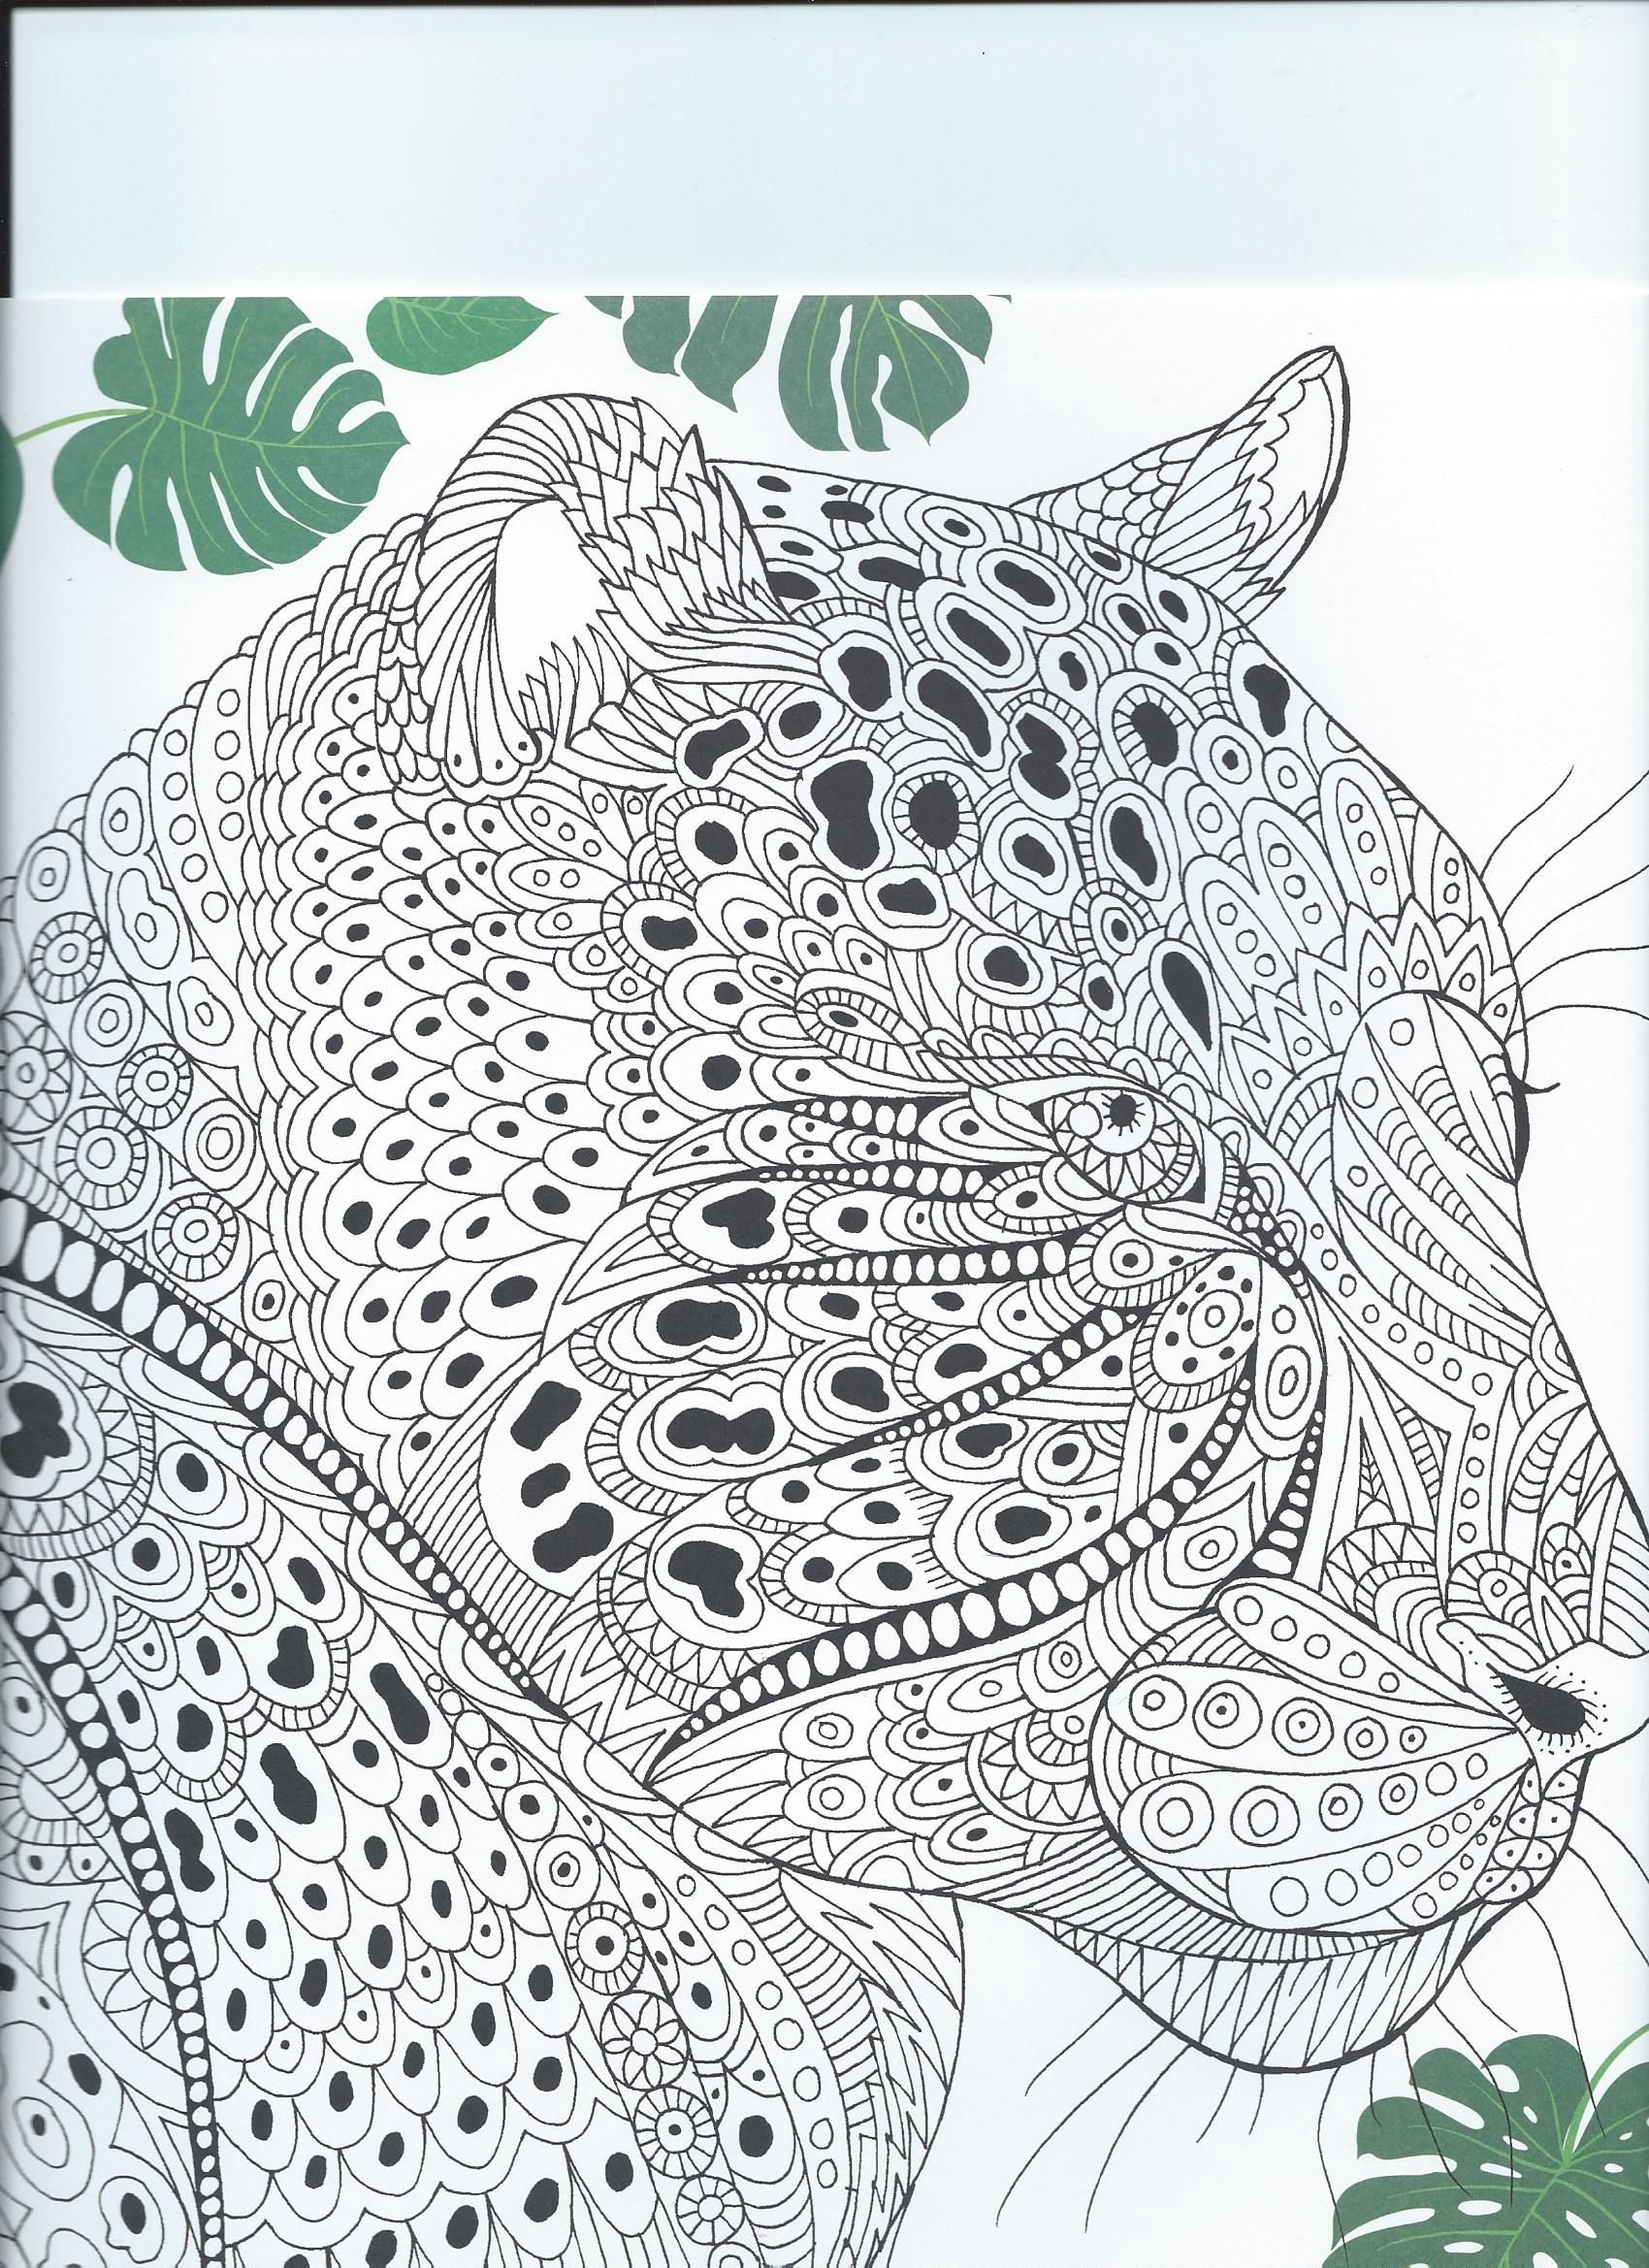 From The Coloring Book The Menagerie Animal Portraits To Color Animal Pictures To Color Dog Images Pet Portraits